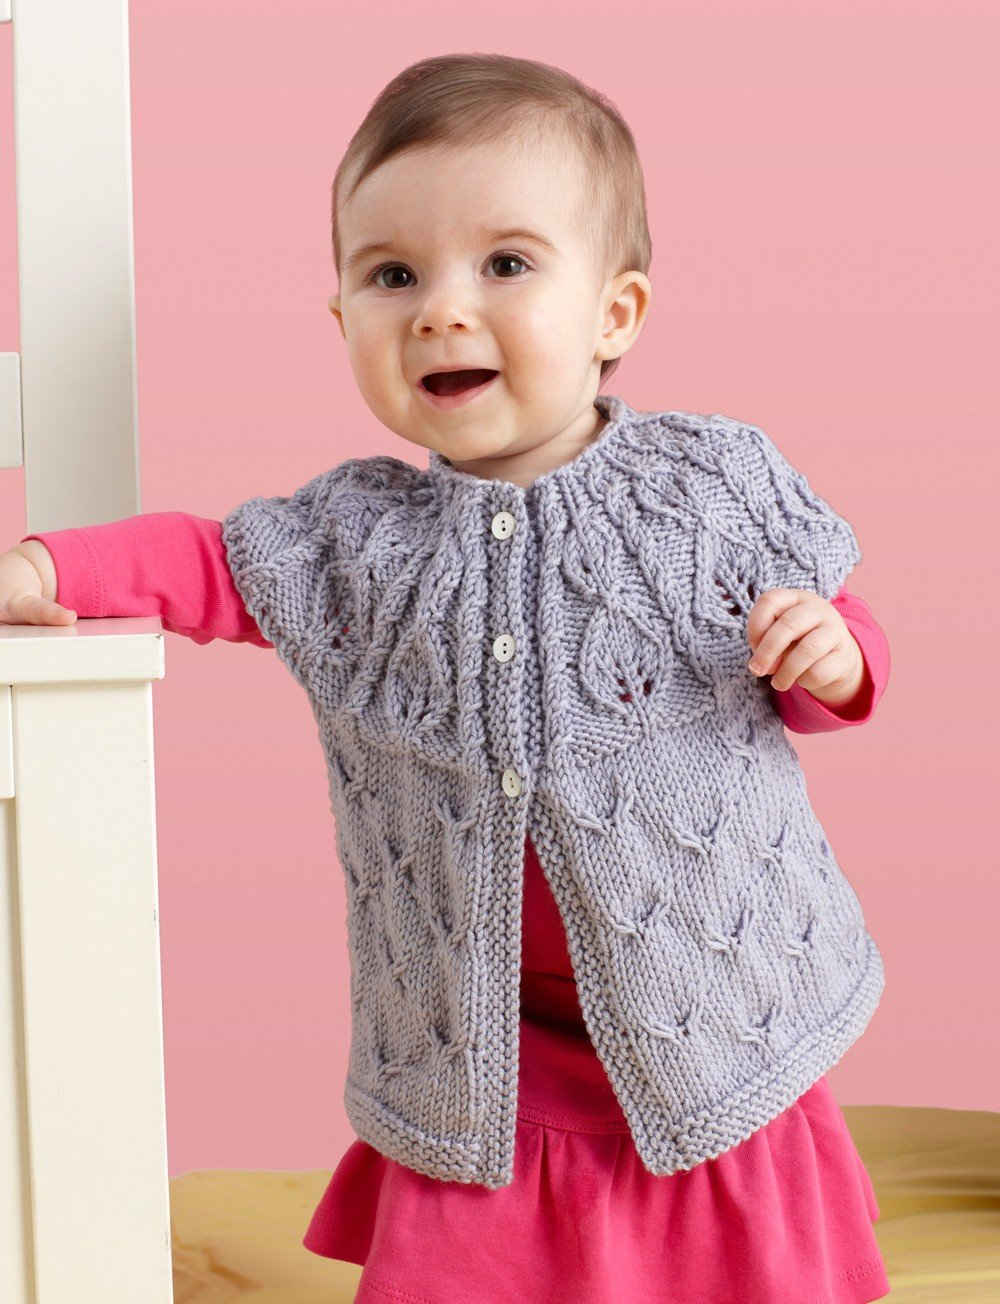 Cardigan Knitting Patterns Free : 10+ Free Baby Sweater Knitting Patterns